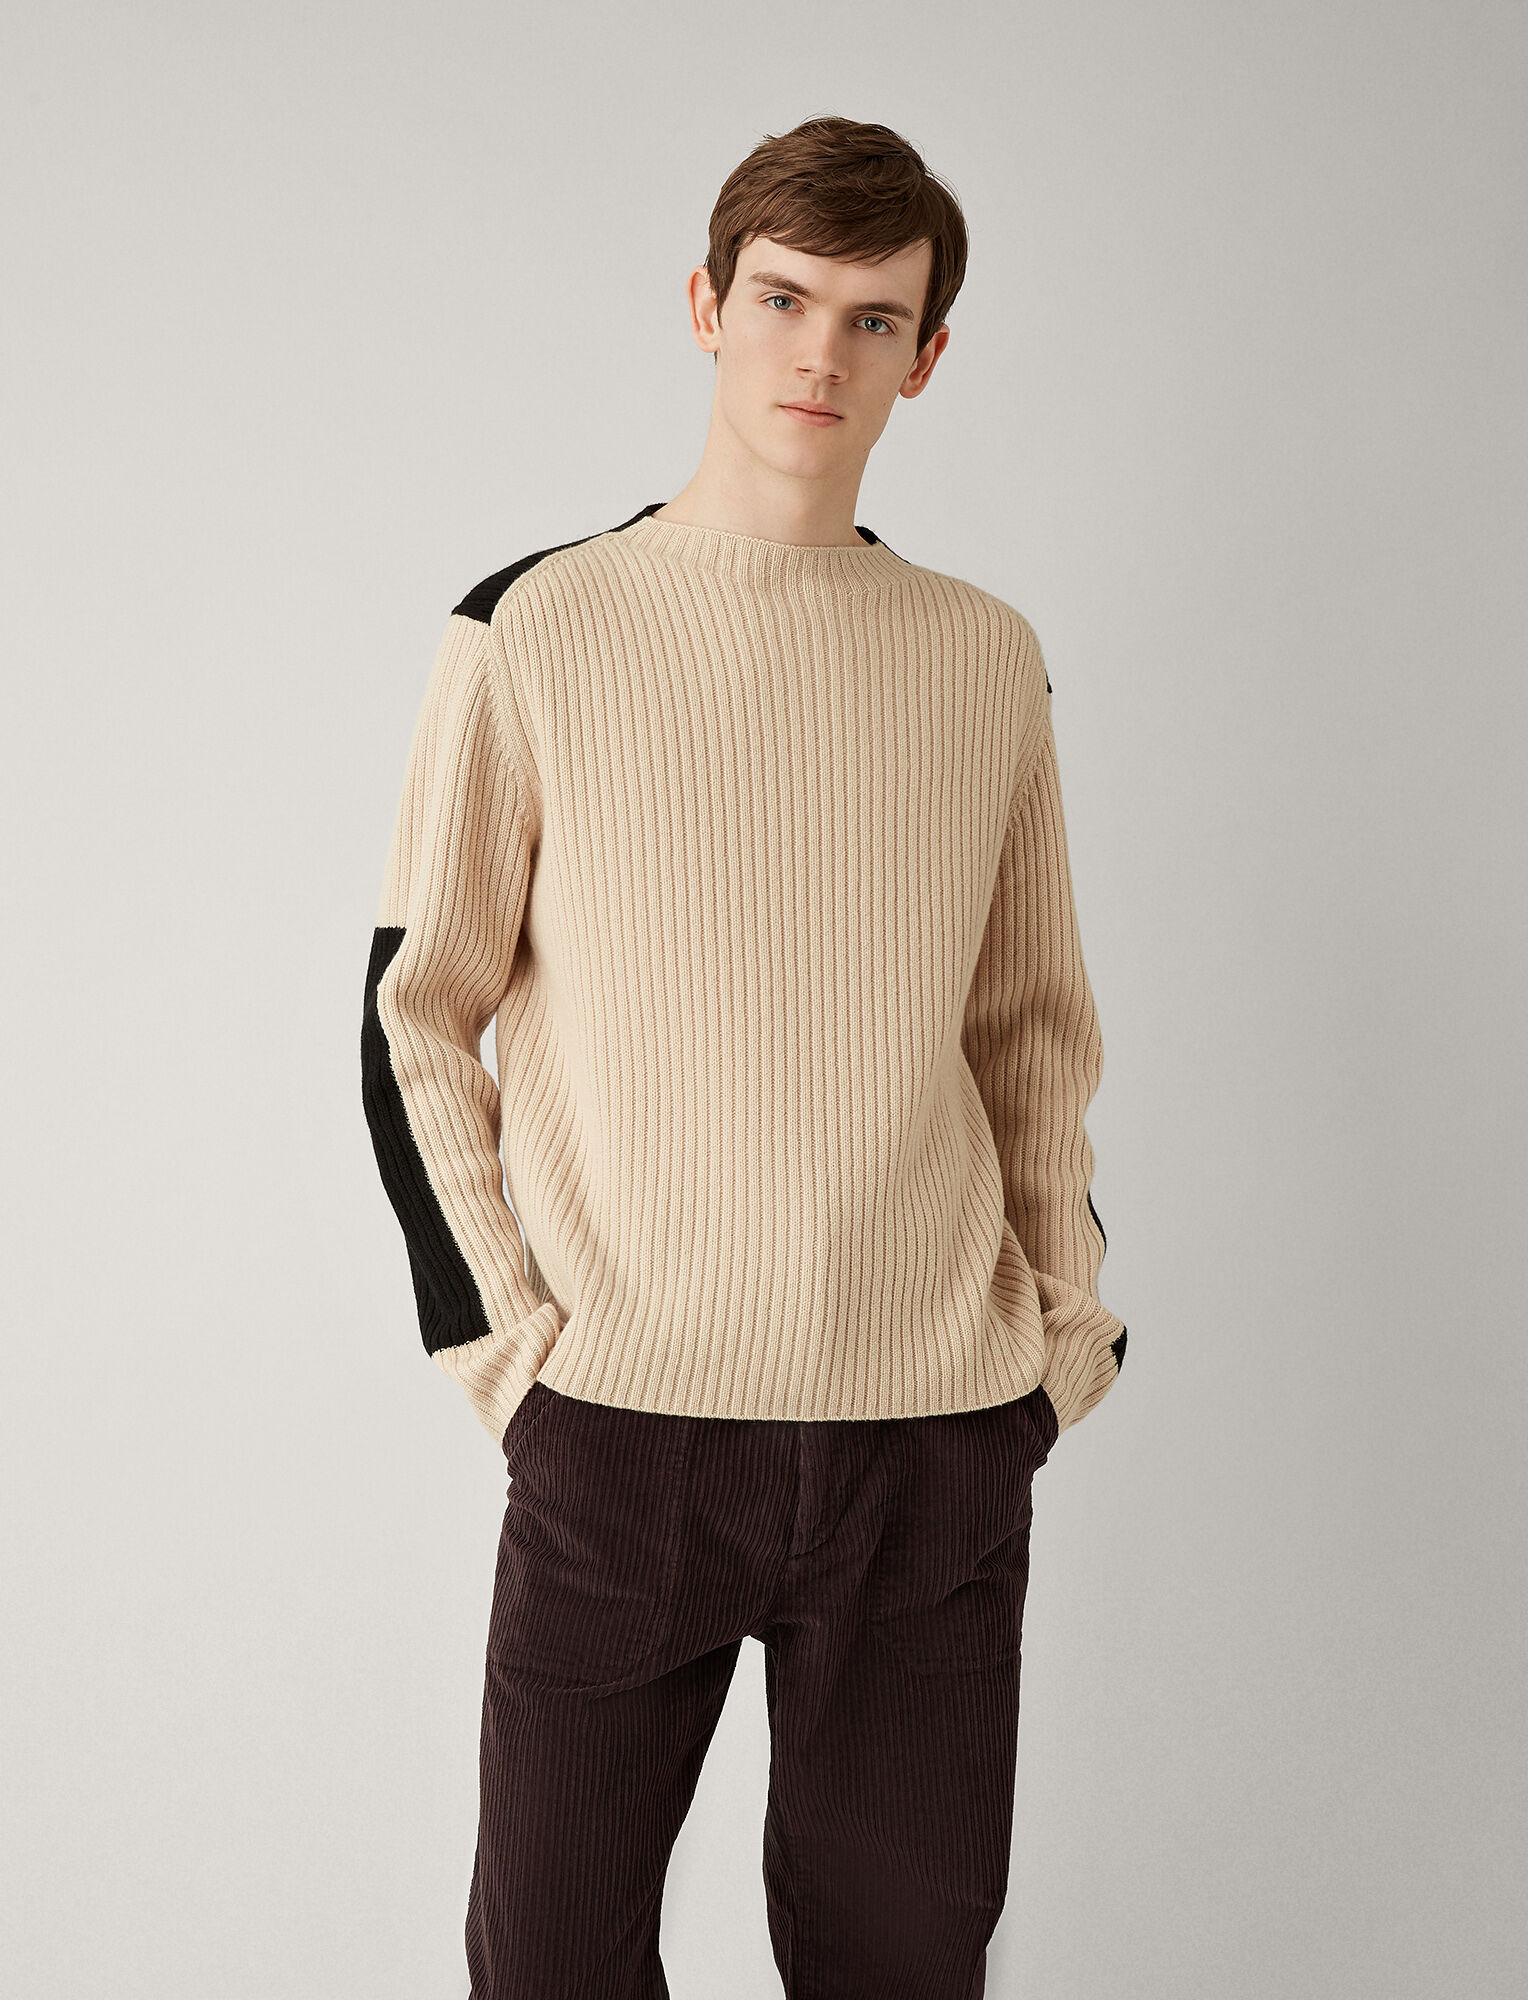 Joseph, Rib Sweater Soft Wool Knitwear, in LATTE